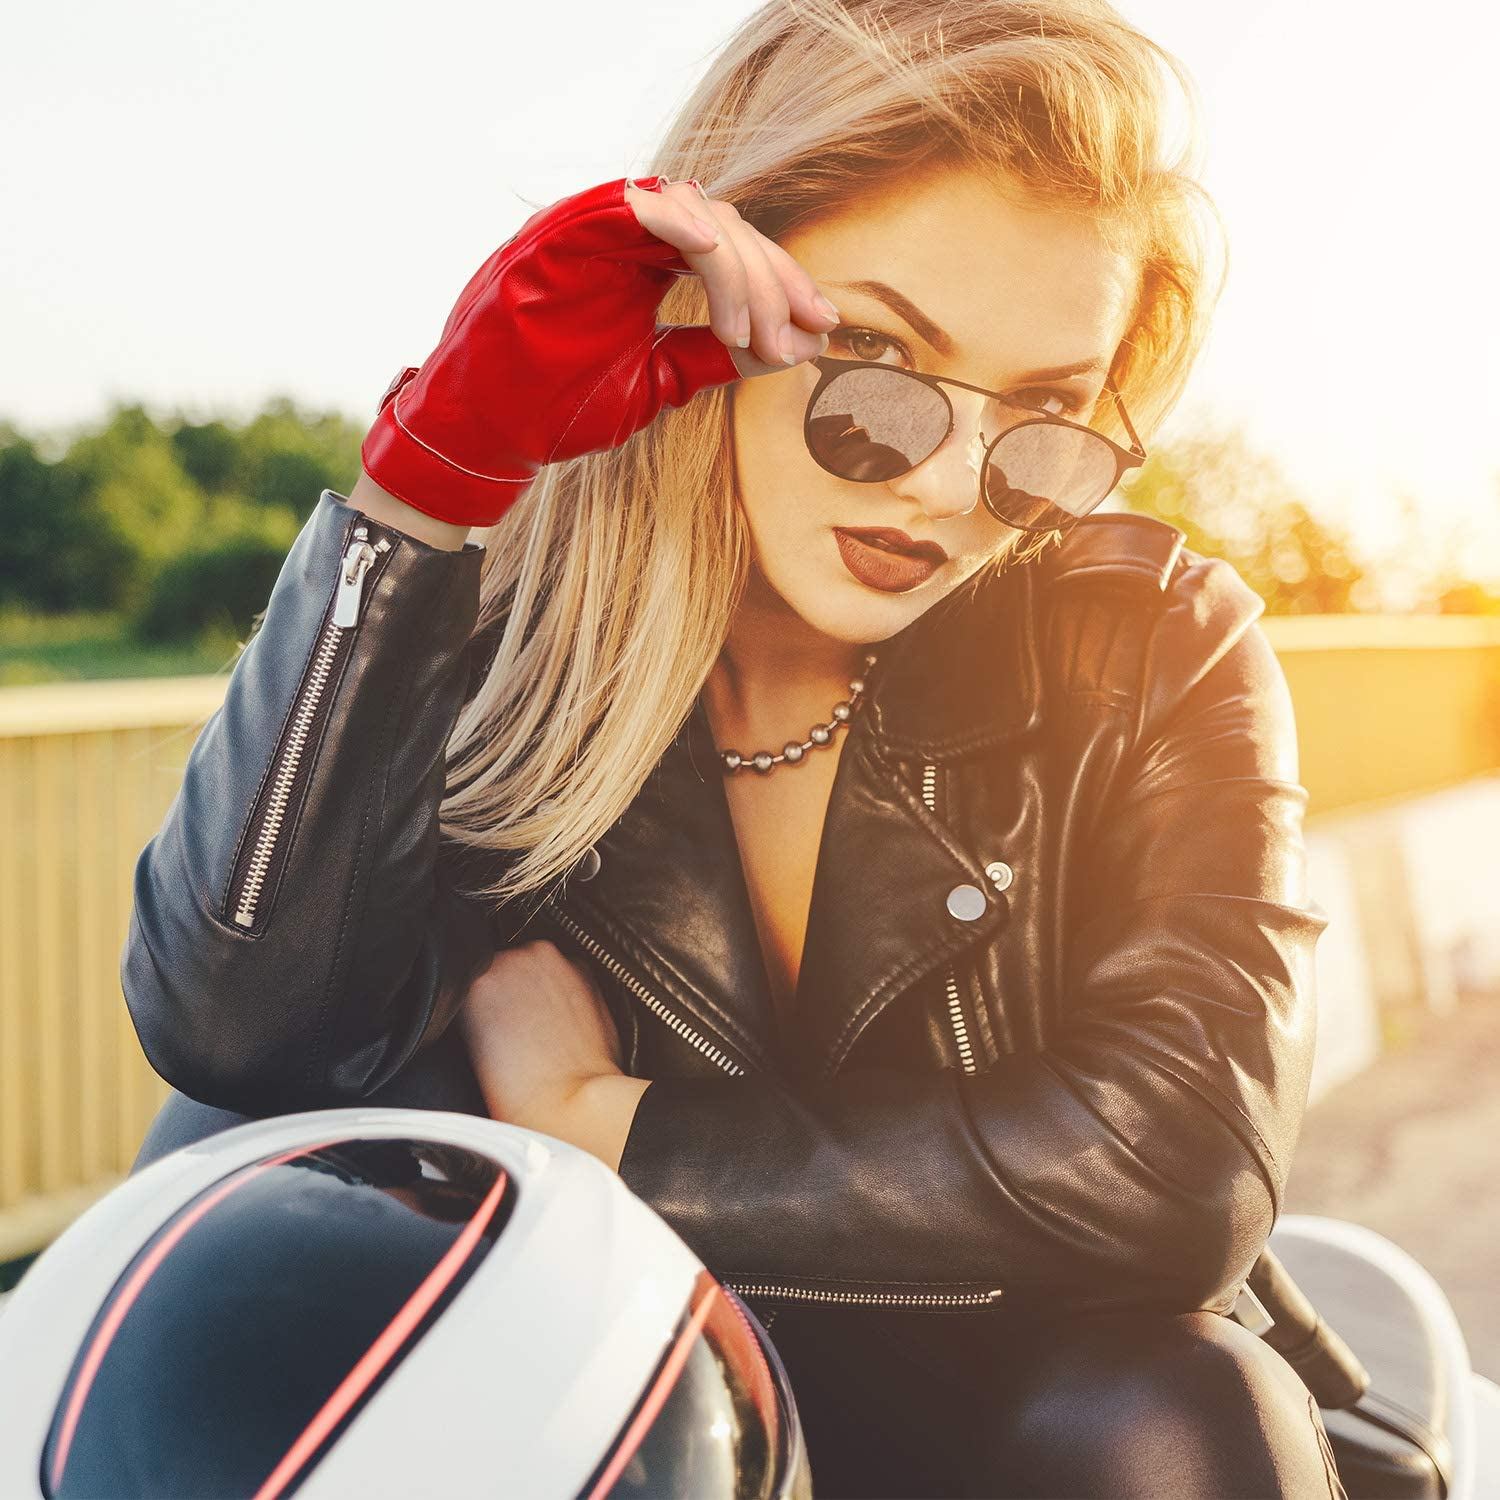 Style A, Red 2 Pairs Fingerless Gloves PU Leather Fingerless Gloves Fingerless Dance Gloves Punk Half Finger Driving Leather Gloves Motorcycle Fashion Driving Gloves for Women